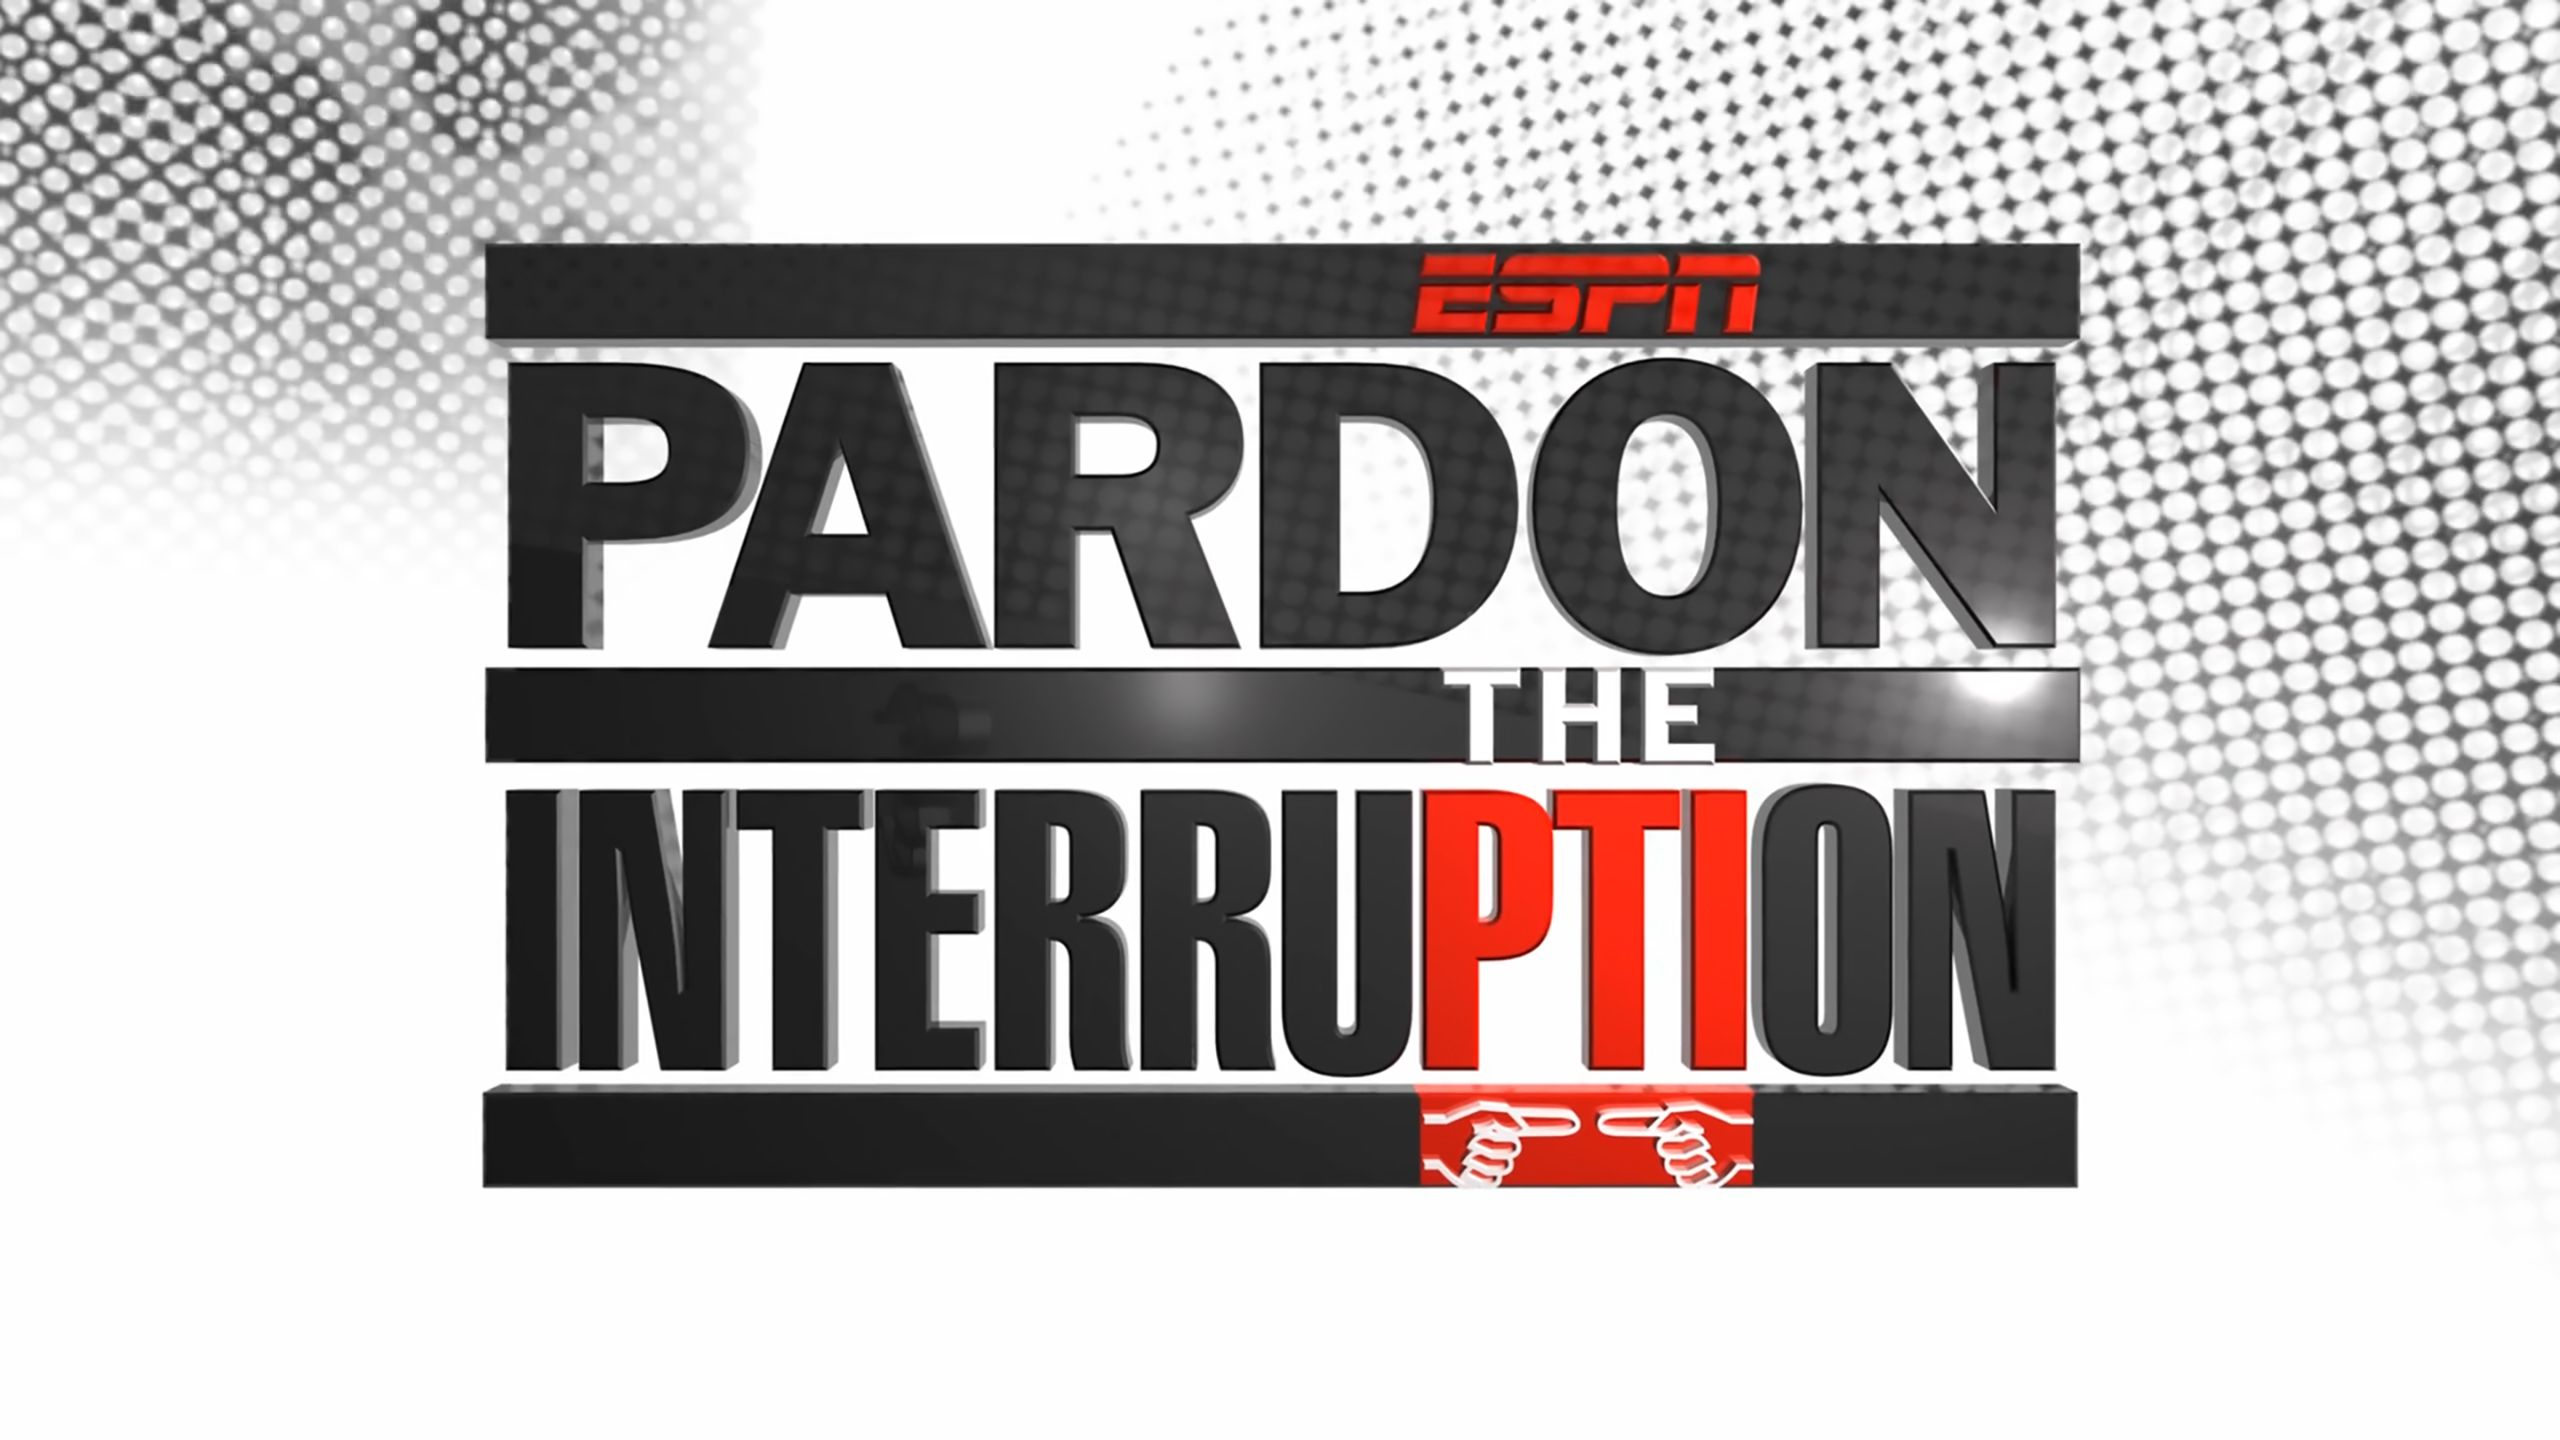 Mon, 11/20 - Pardon The Interruption